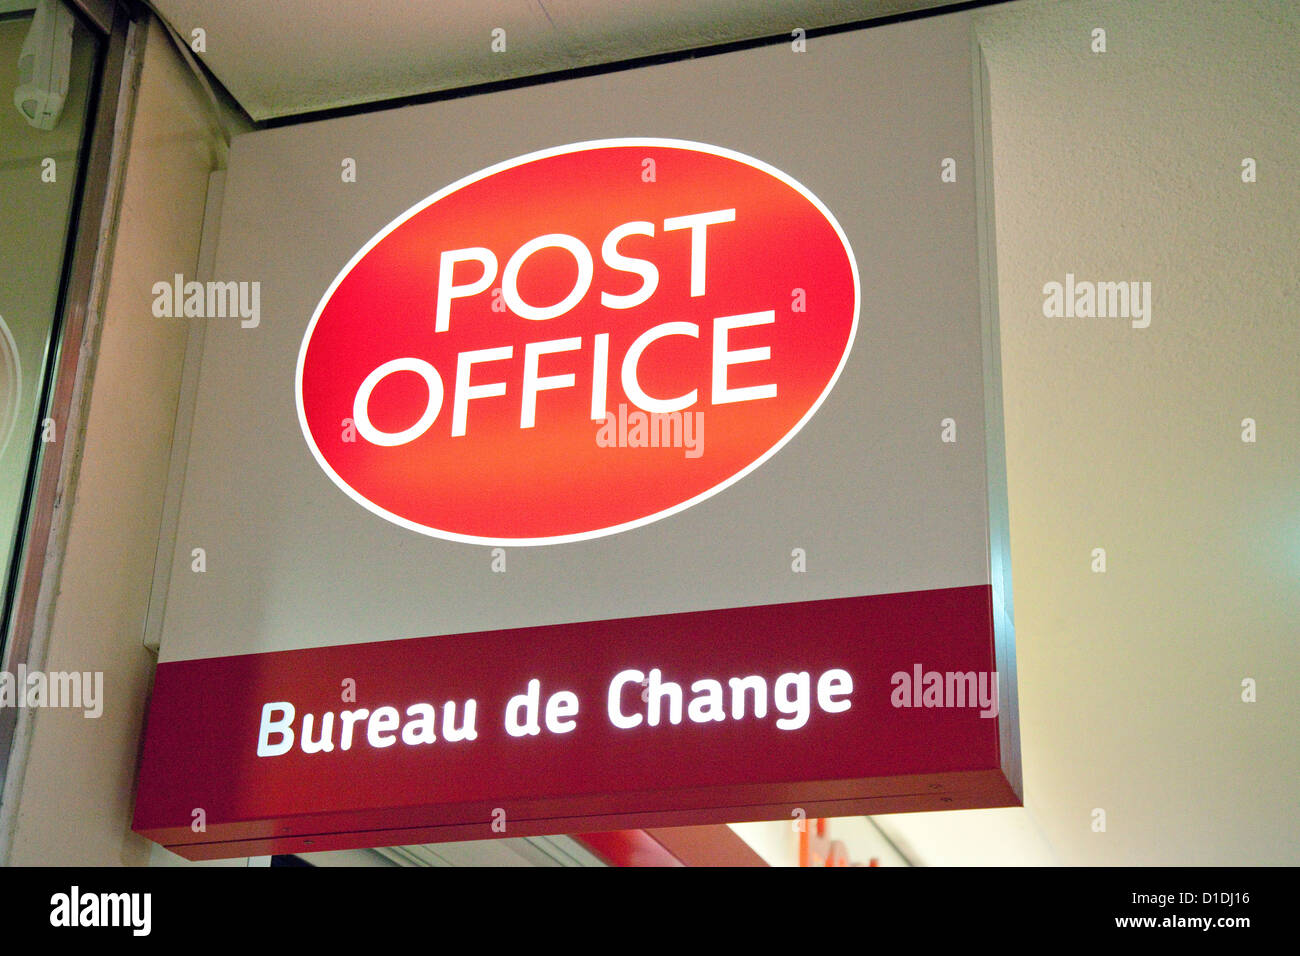 Post Office Bureau de Change store sign, MK centre, Milton Keynes UK - Stock Image